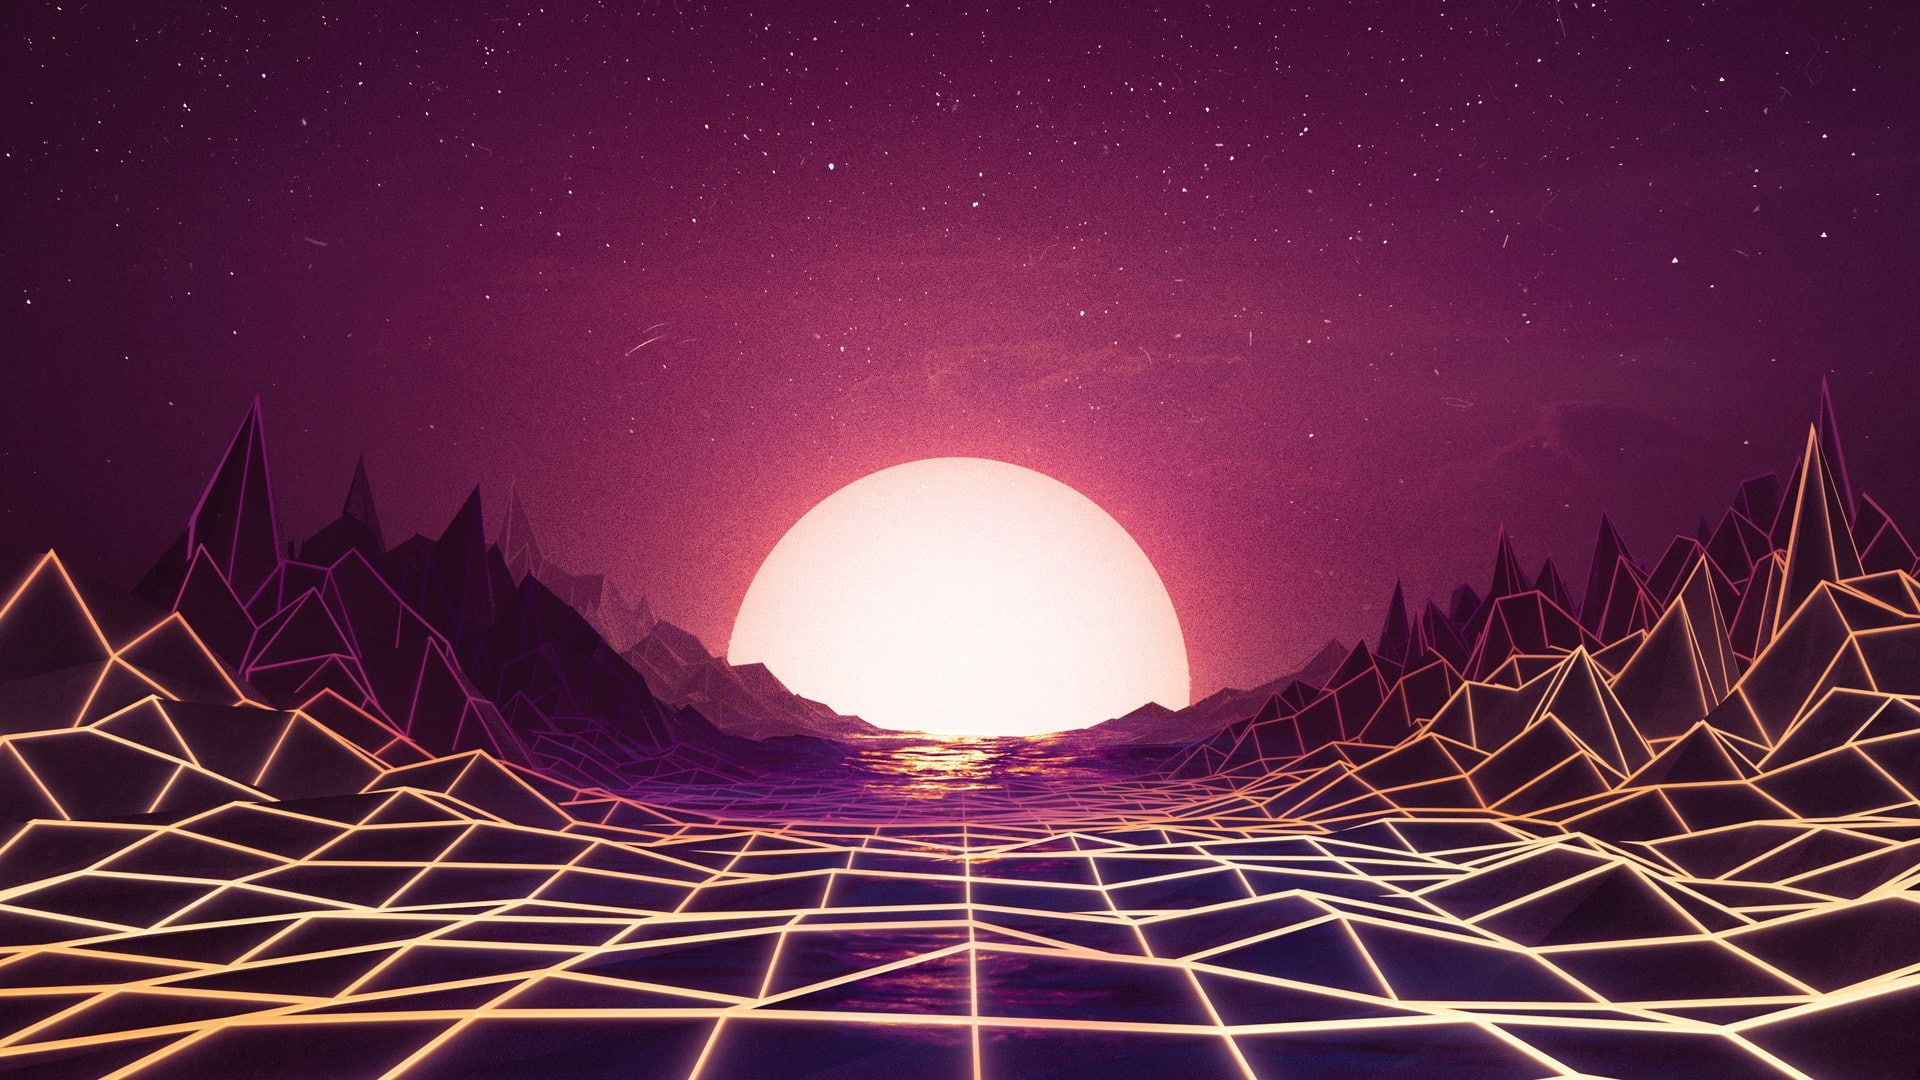 Sunset The Sun Music Space Star Background Neon 80 S Synth Retrowave Synthwave New Retro Wave Futuresynth Sint Wallpaper Synthwave Art Hd Wallpaper